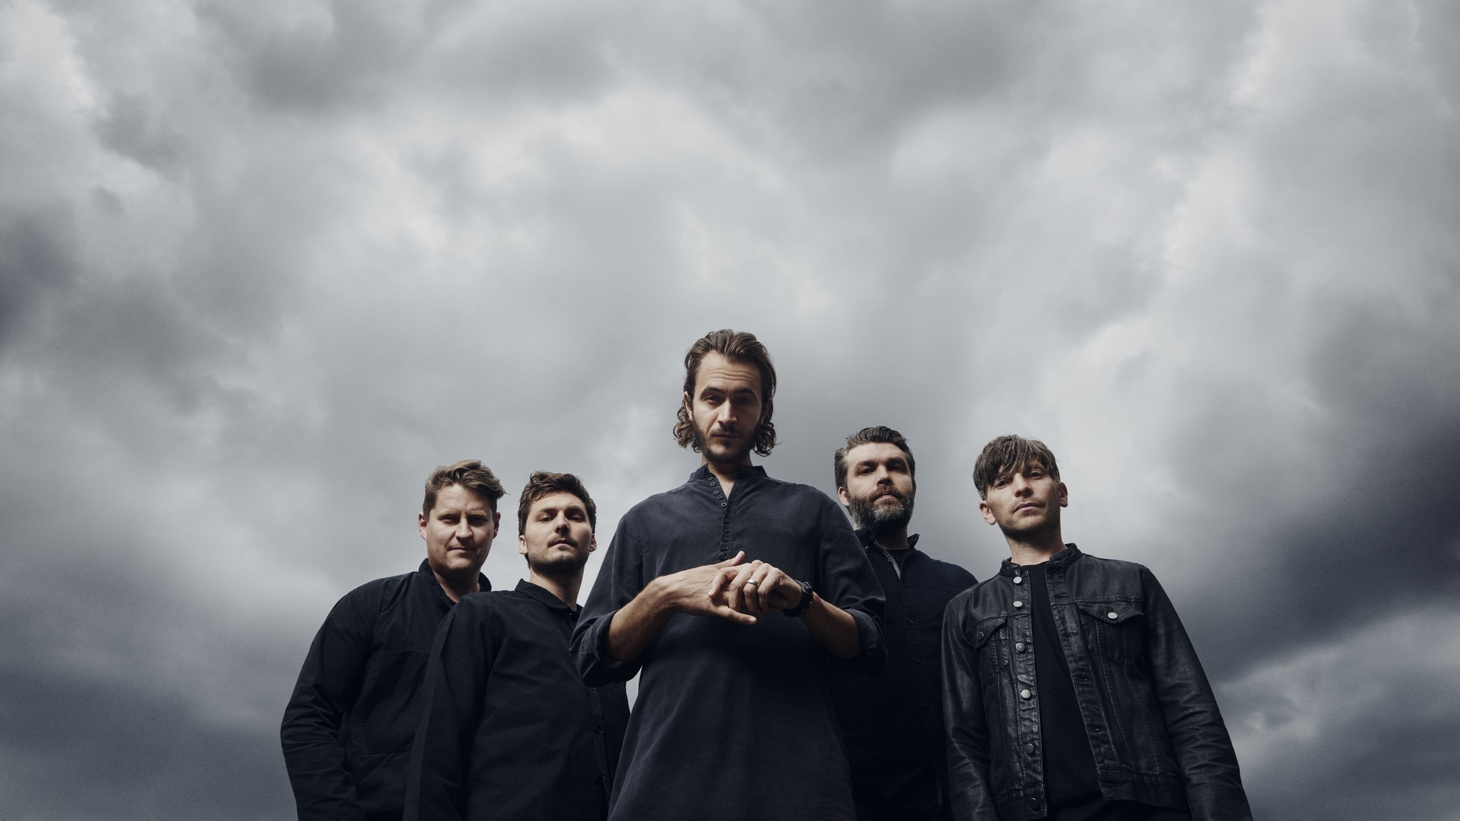 """Six albums in, Editors return with the kinetically cracking, """"Frankenstein."""" Fr  ontman Tom Smith thinks of the track as: """"a song of joy and escapism - a cartoon song for the freaks, the different and for the night."""""""